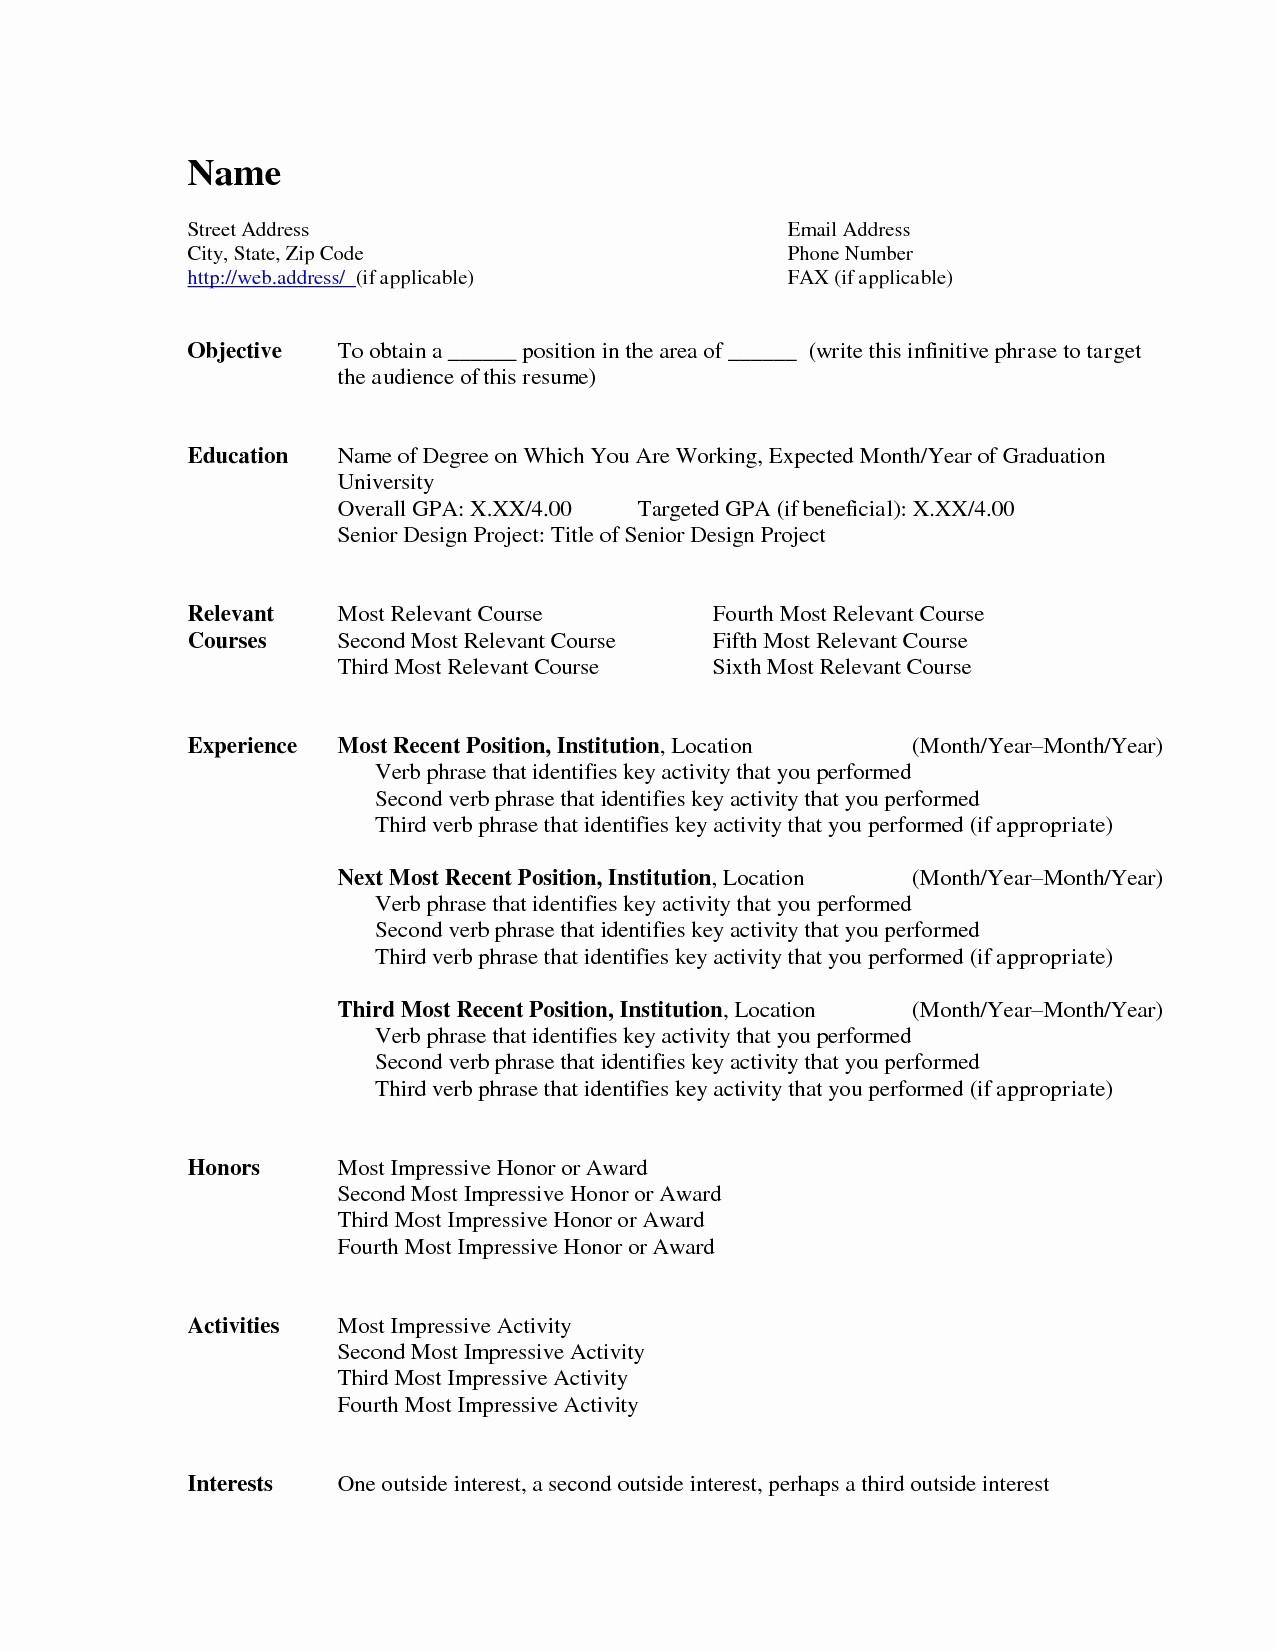 Ms Word Templates for Resume Awesome Microsoft Word Resume Templates Beepmunk